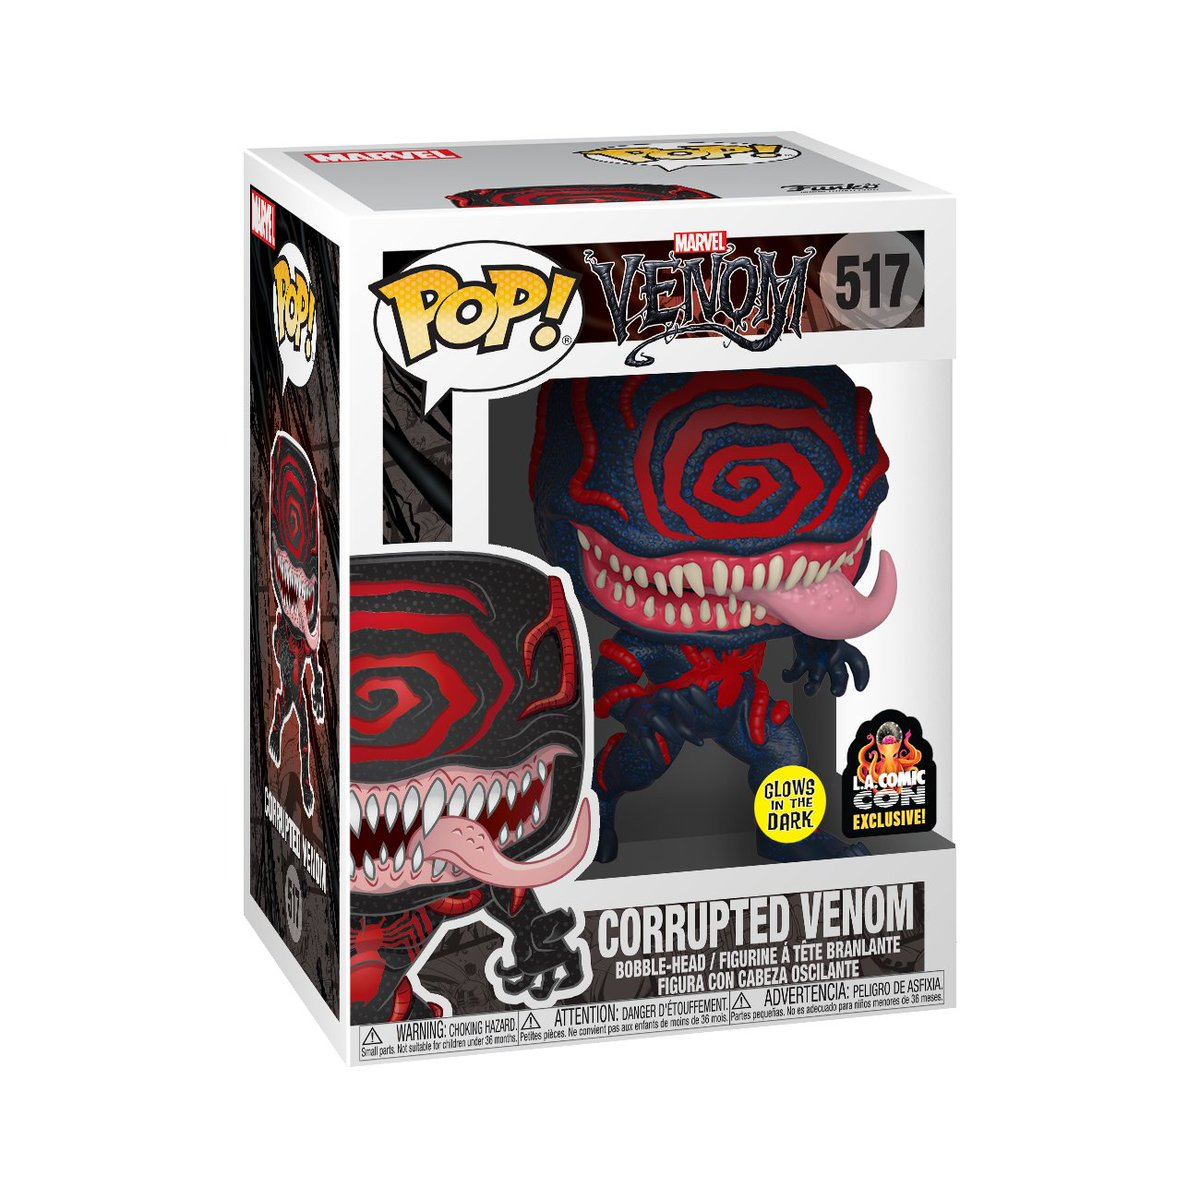 RT & follow @OriginalFunko for a chance to WIN a @HotTopic L.A. Comic Con exclusive Glow-in-the-Dark Corrupted Venom Pop!  #Funko #Pop #Exclusive #Giveaway #FunkoFamily #Marvel<br>http://pic.twitter.com/L0zD2kw8Md